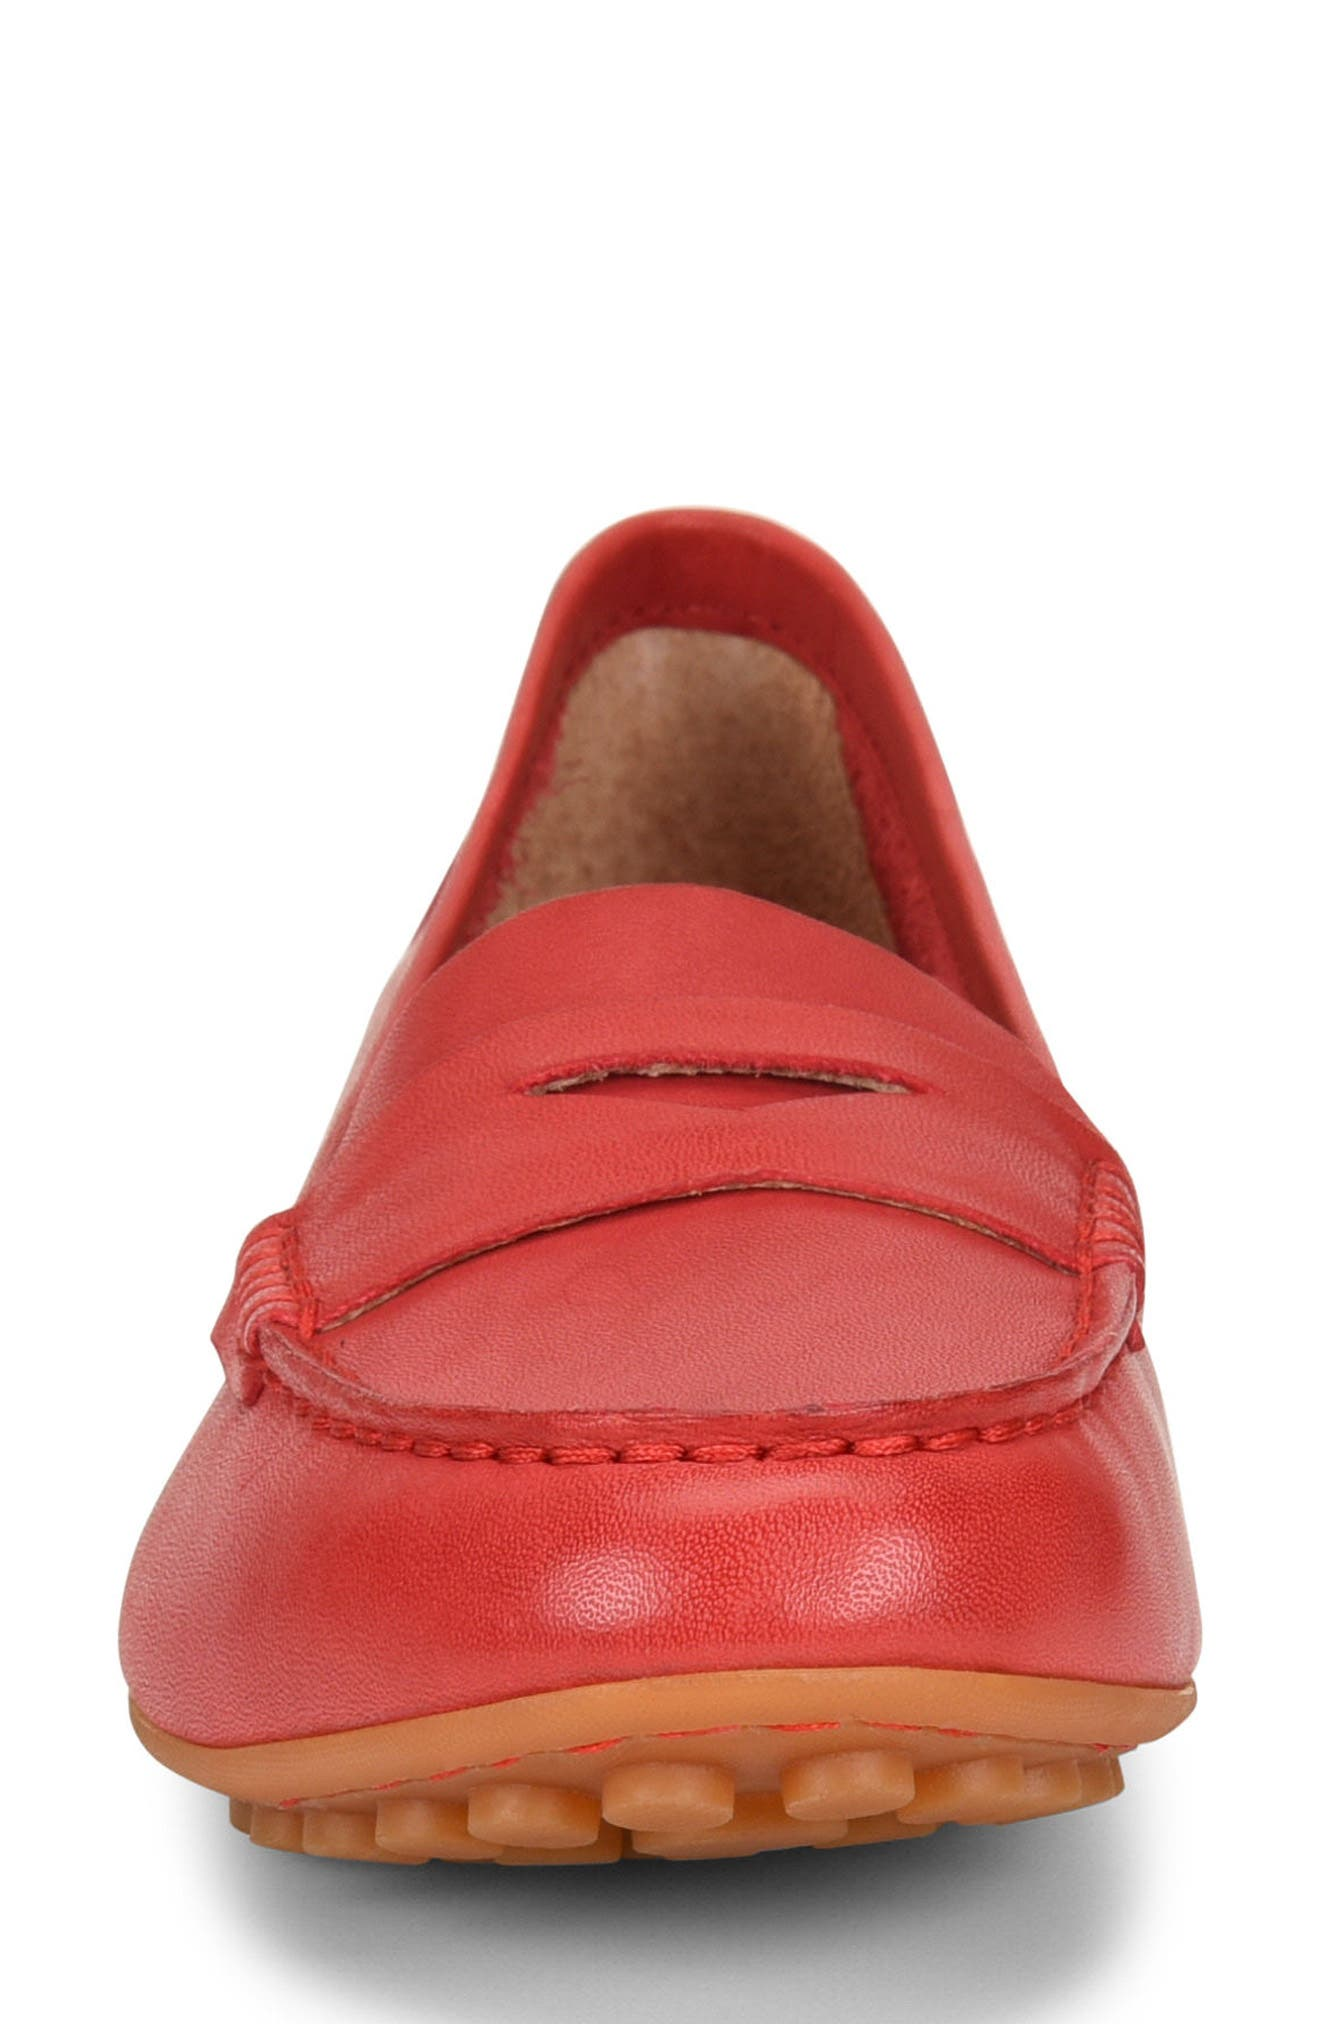 Malena Driving Loafer,                             Alternate thumbnail 4, color,                             RED LEATHER